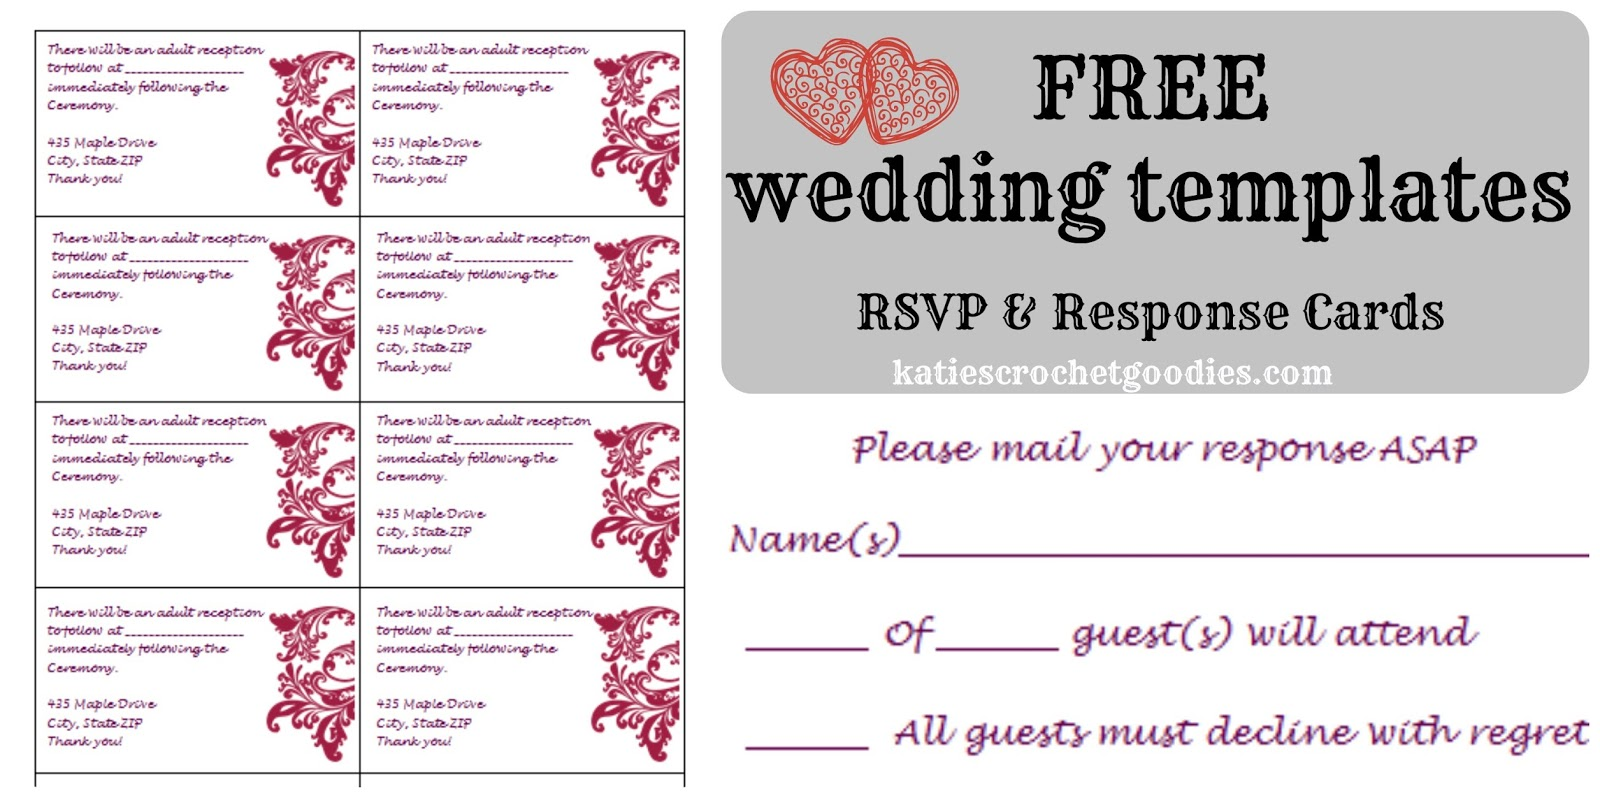 rsvp cards for weddings templates free wedding templates rsvp reception cards katie 39 s